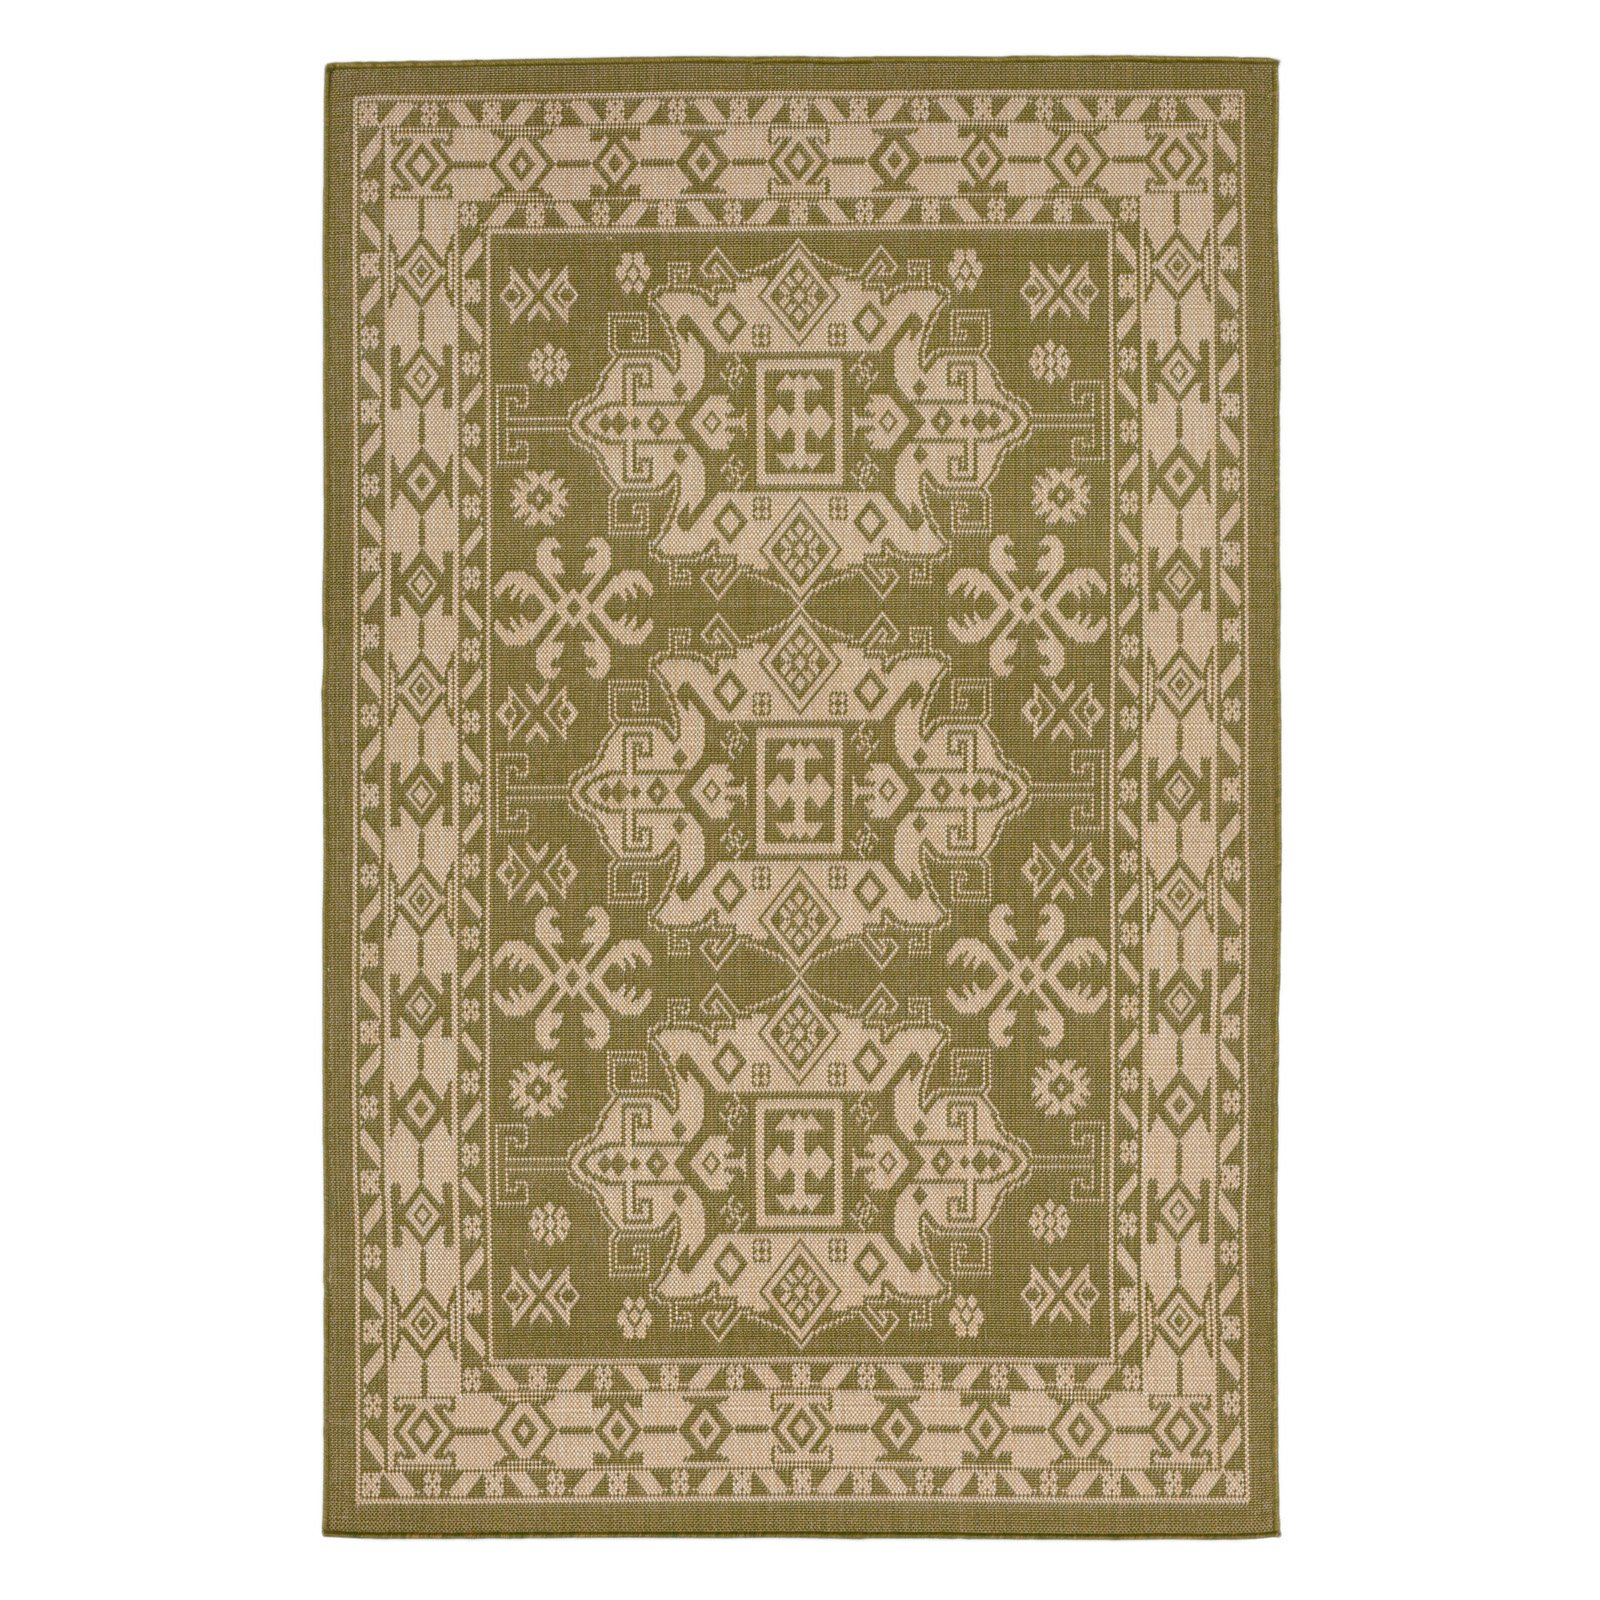 Liora Manne Terrace 1781/76 Kilim Green Area Rug 23 Inches X 35 Inches